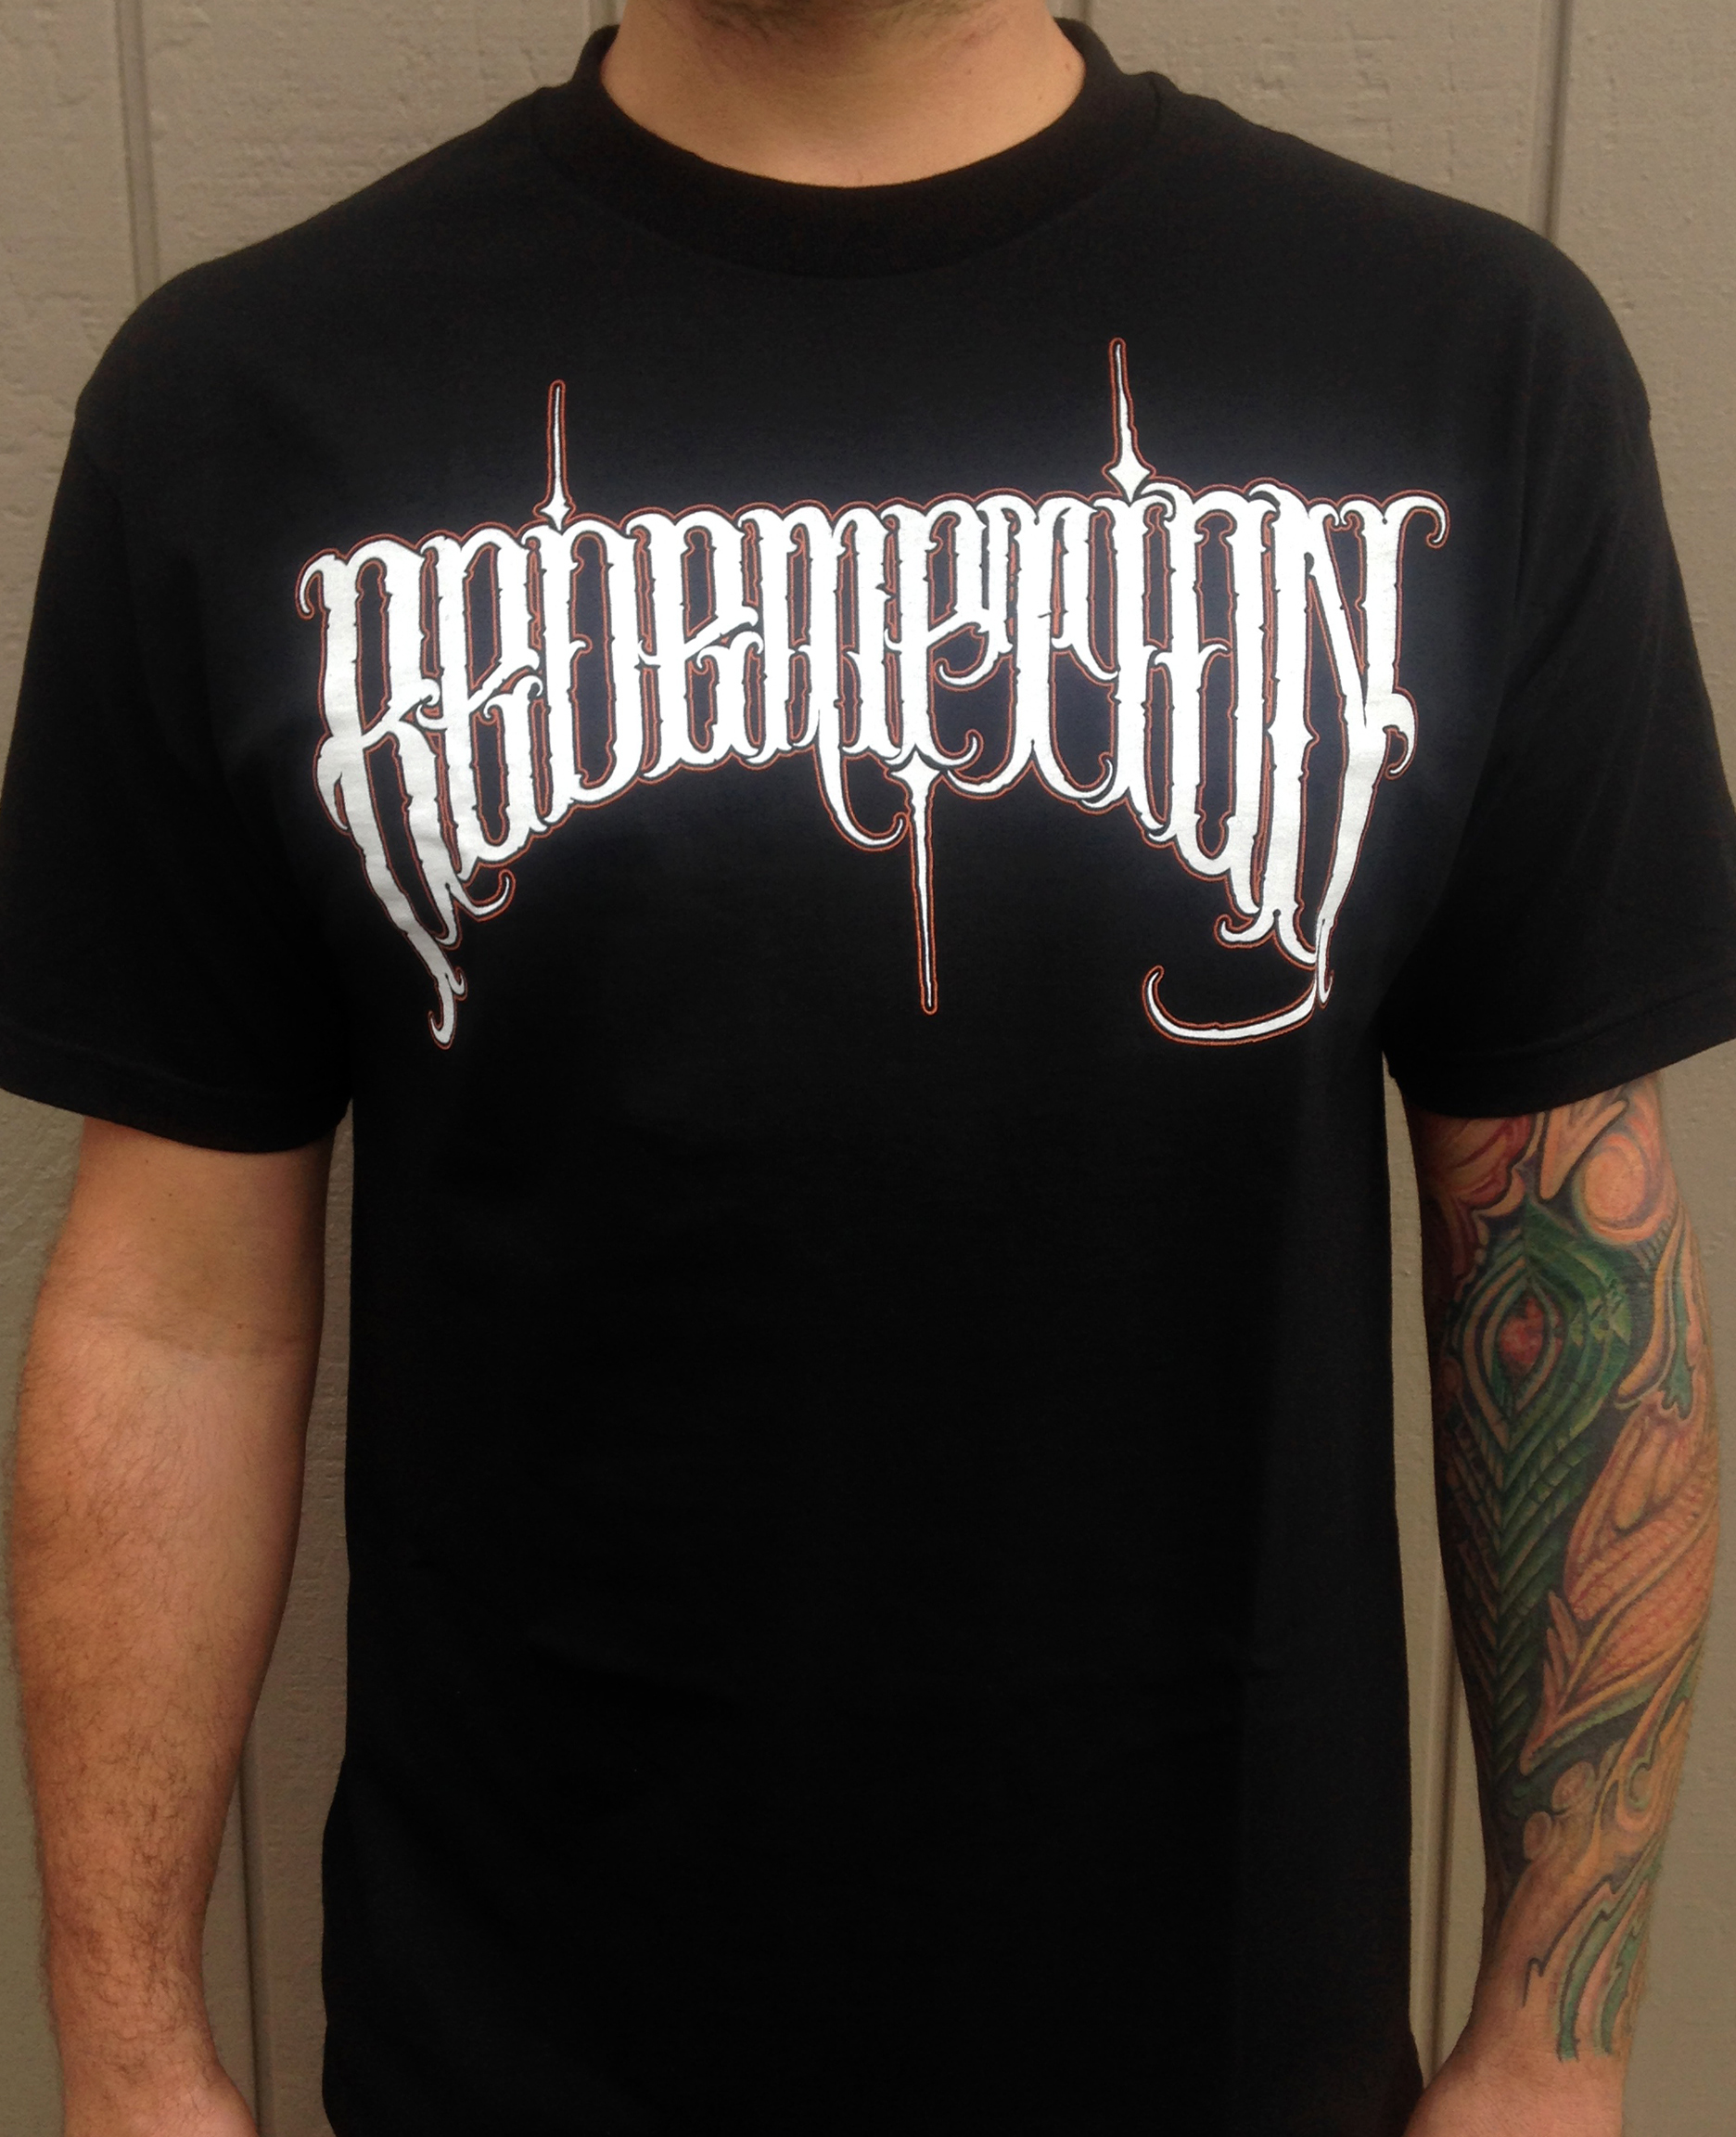 Redemption shirt front